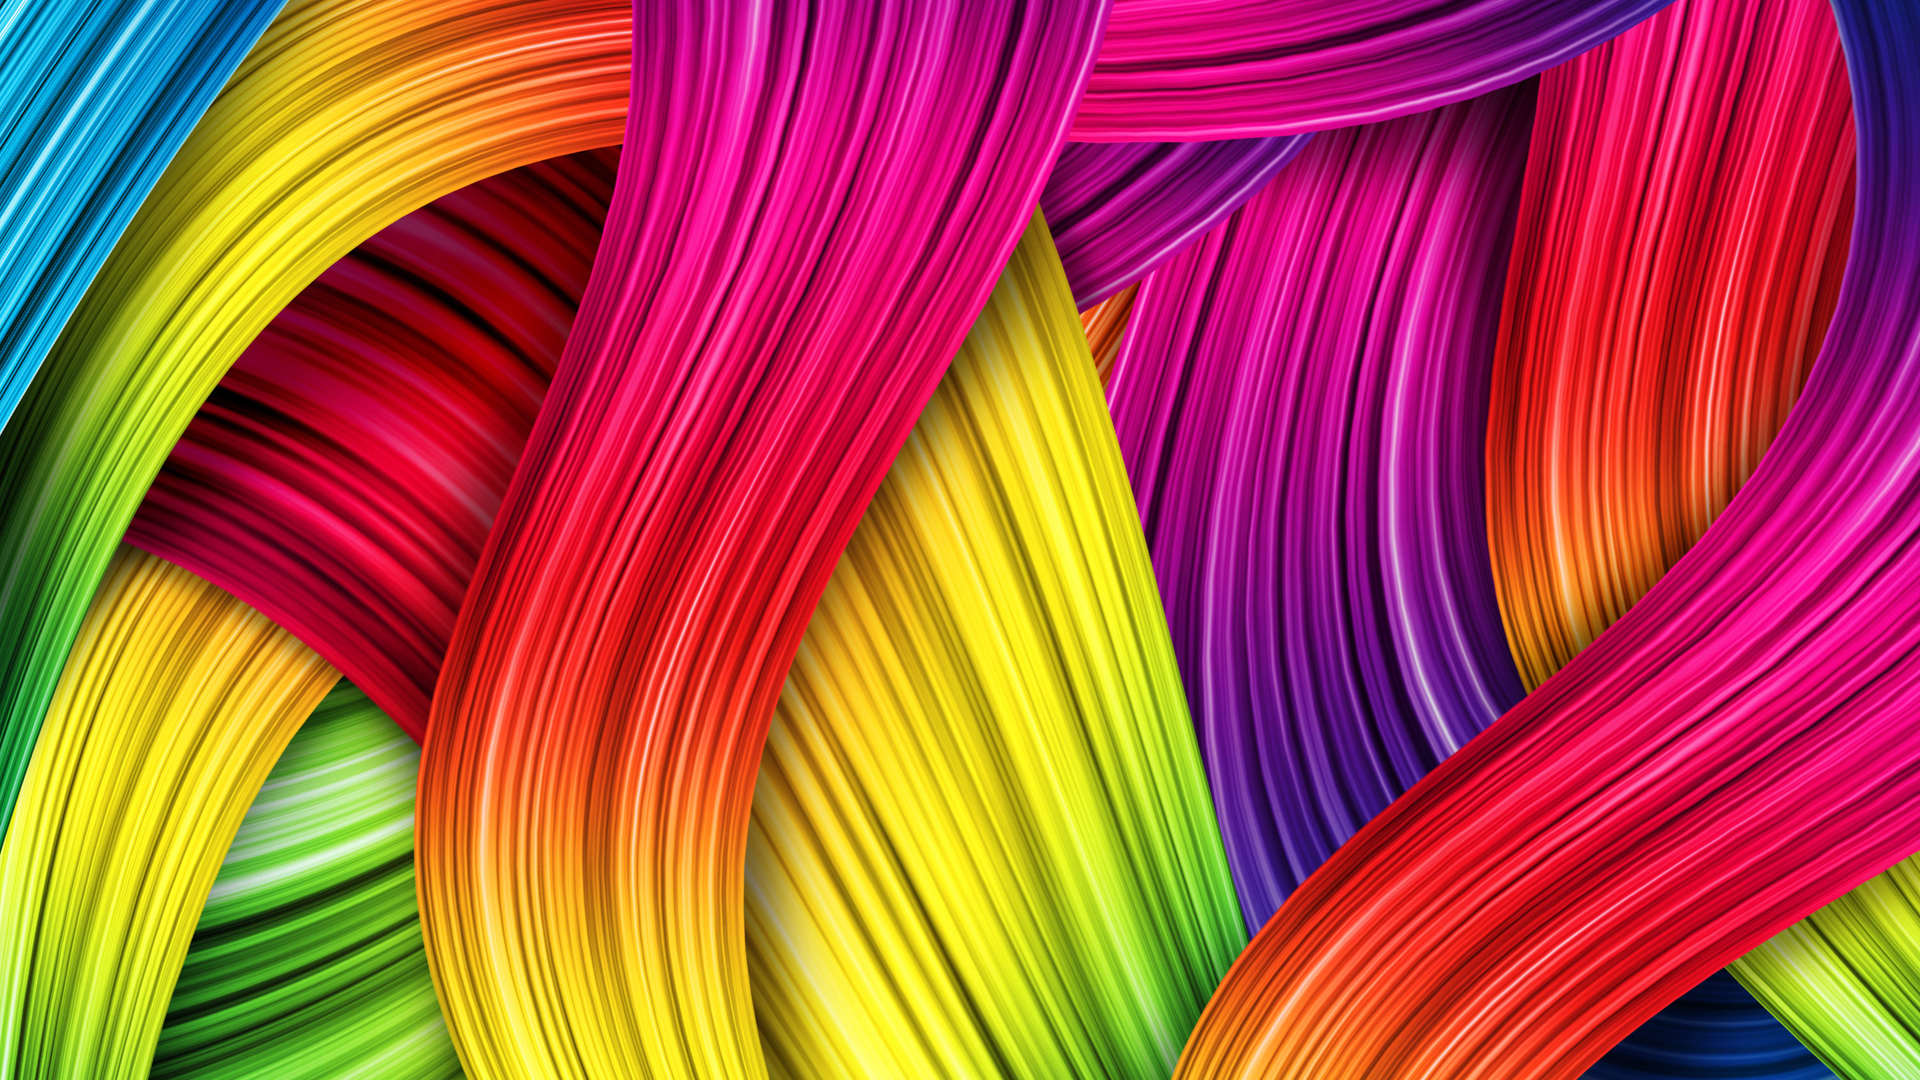 Related Post To Colorful Abstract HD Desktop Wallpaper 1920x1080